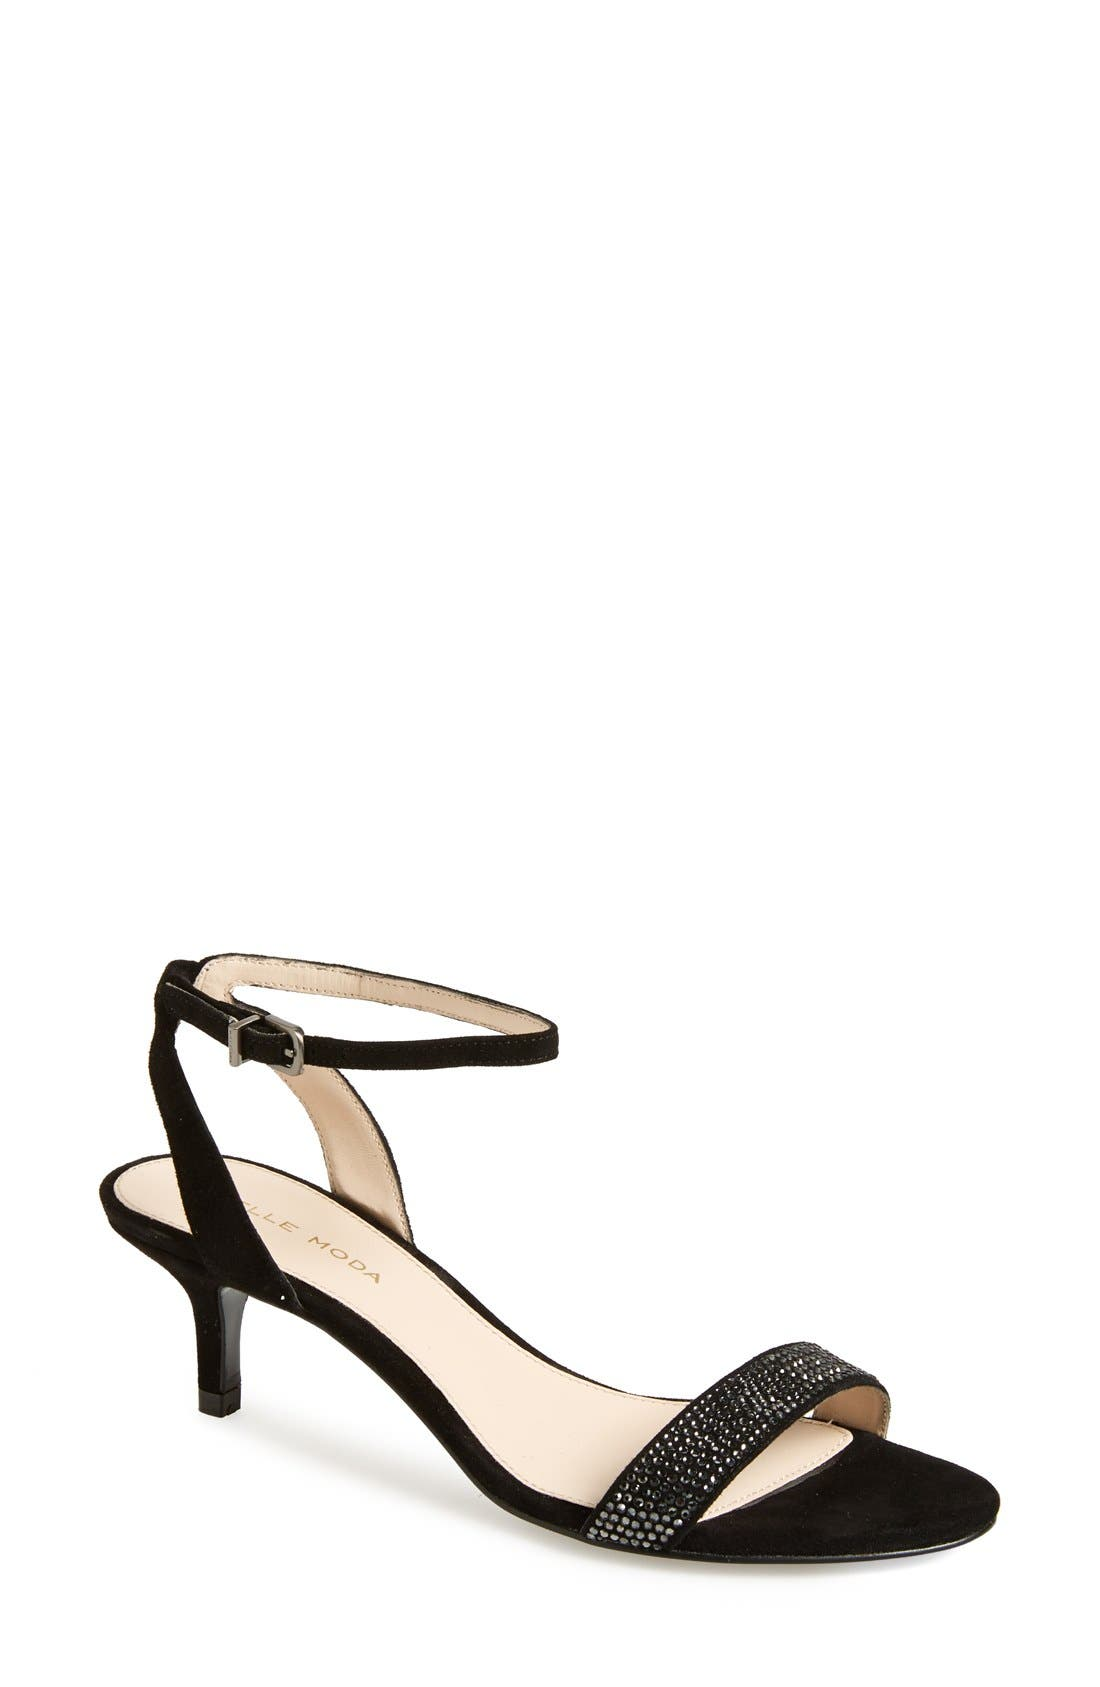 'Fabia' Sandal,                             Main thumbnail 1, color,                             BLACK SUEDE